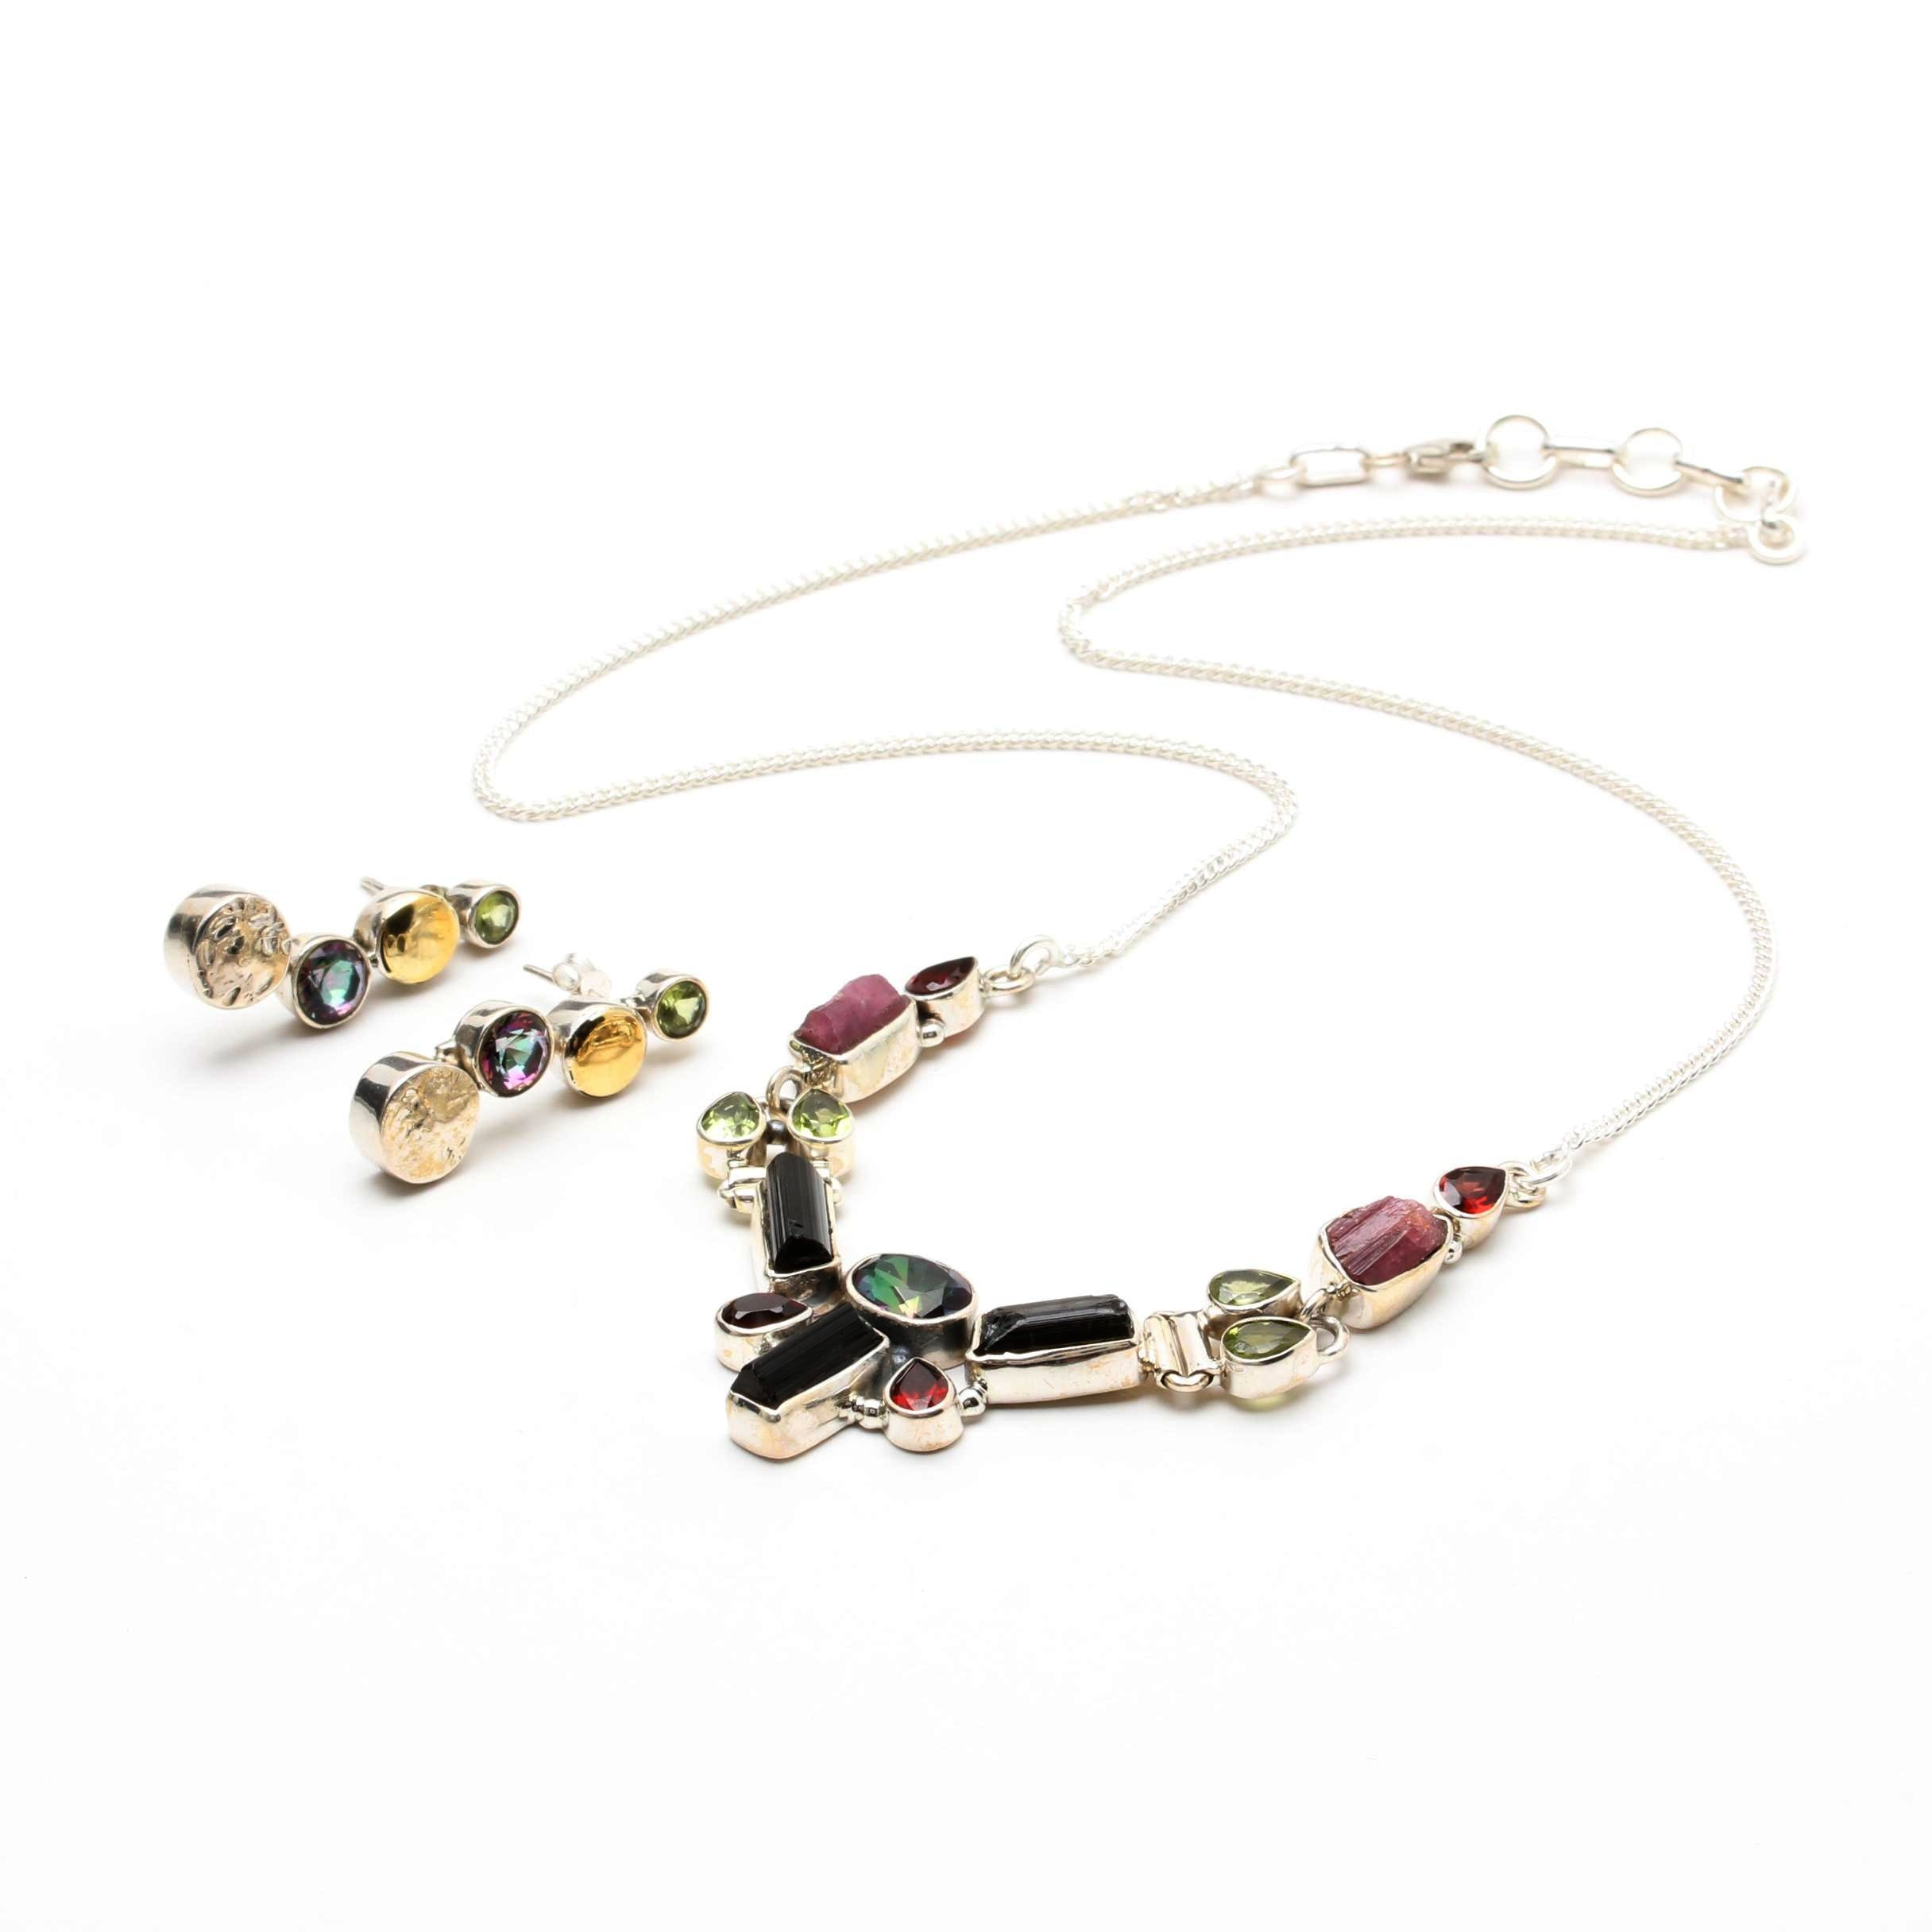 Sterling Silver Gemstone Necklace and Earrings Including Peridot